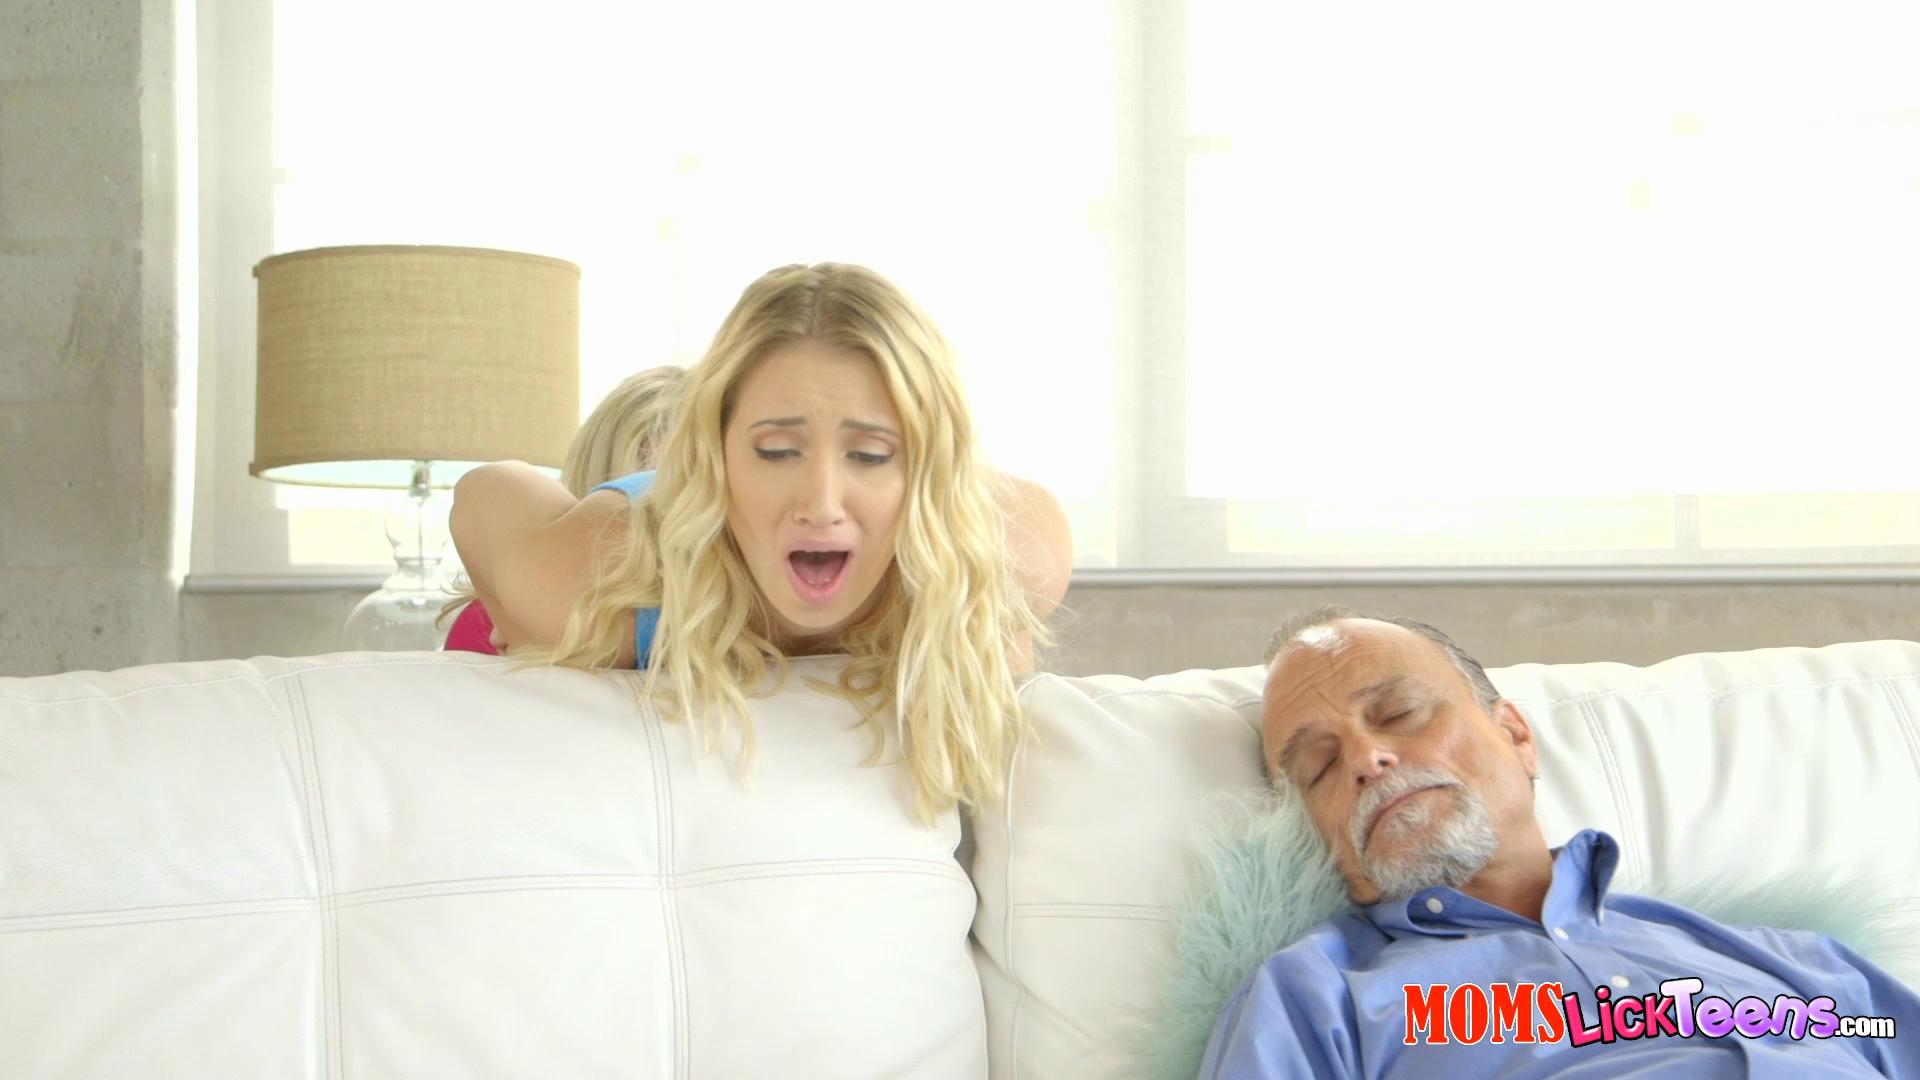 MomsLickTeens – Cory Chase And Sierra Nicole Dont Wake Him